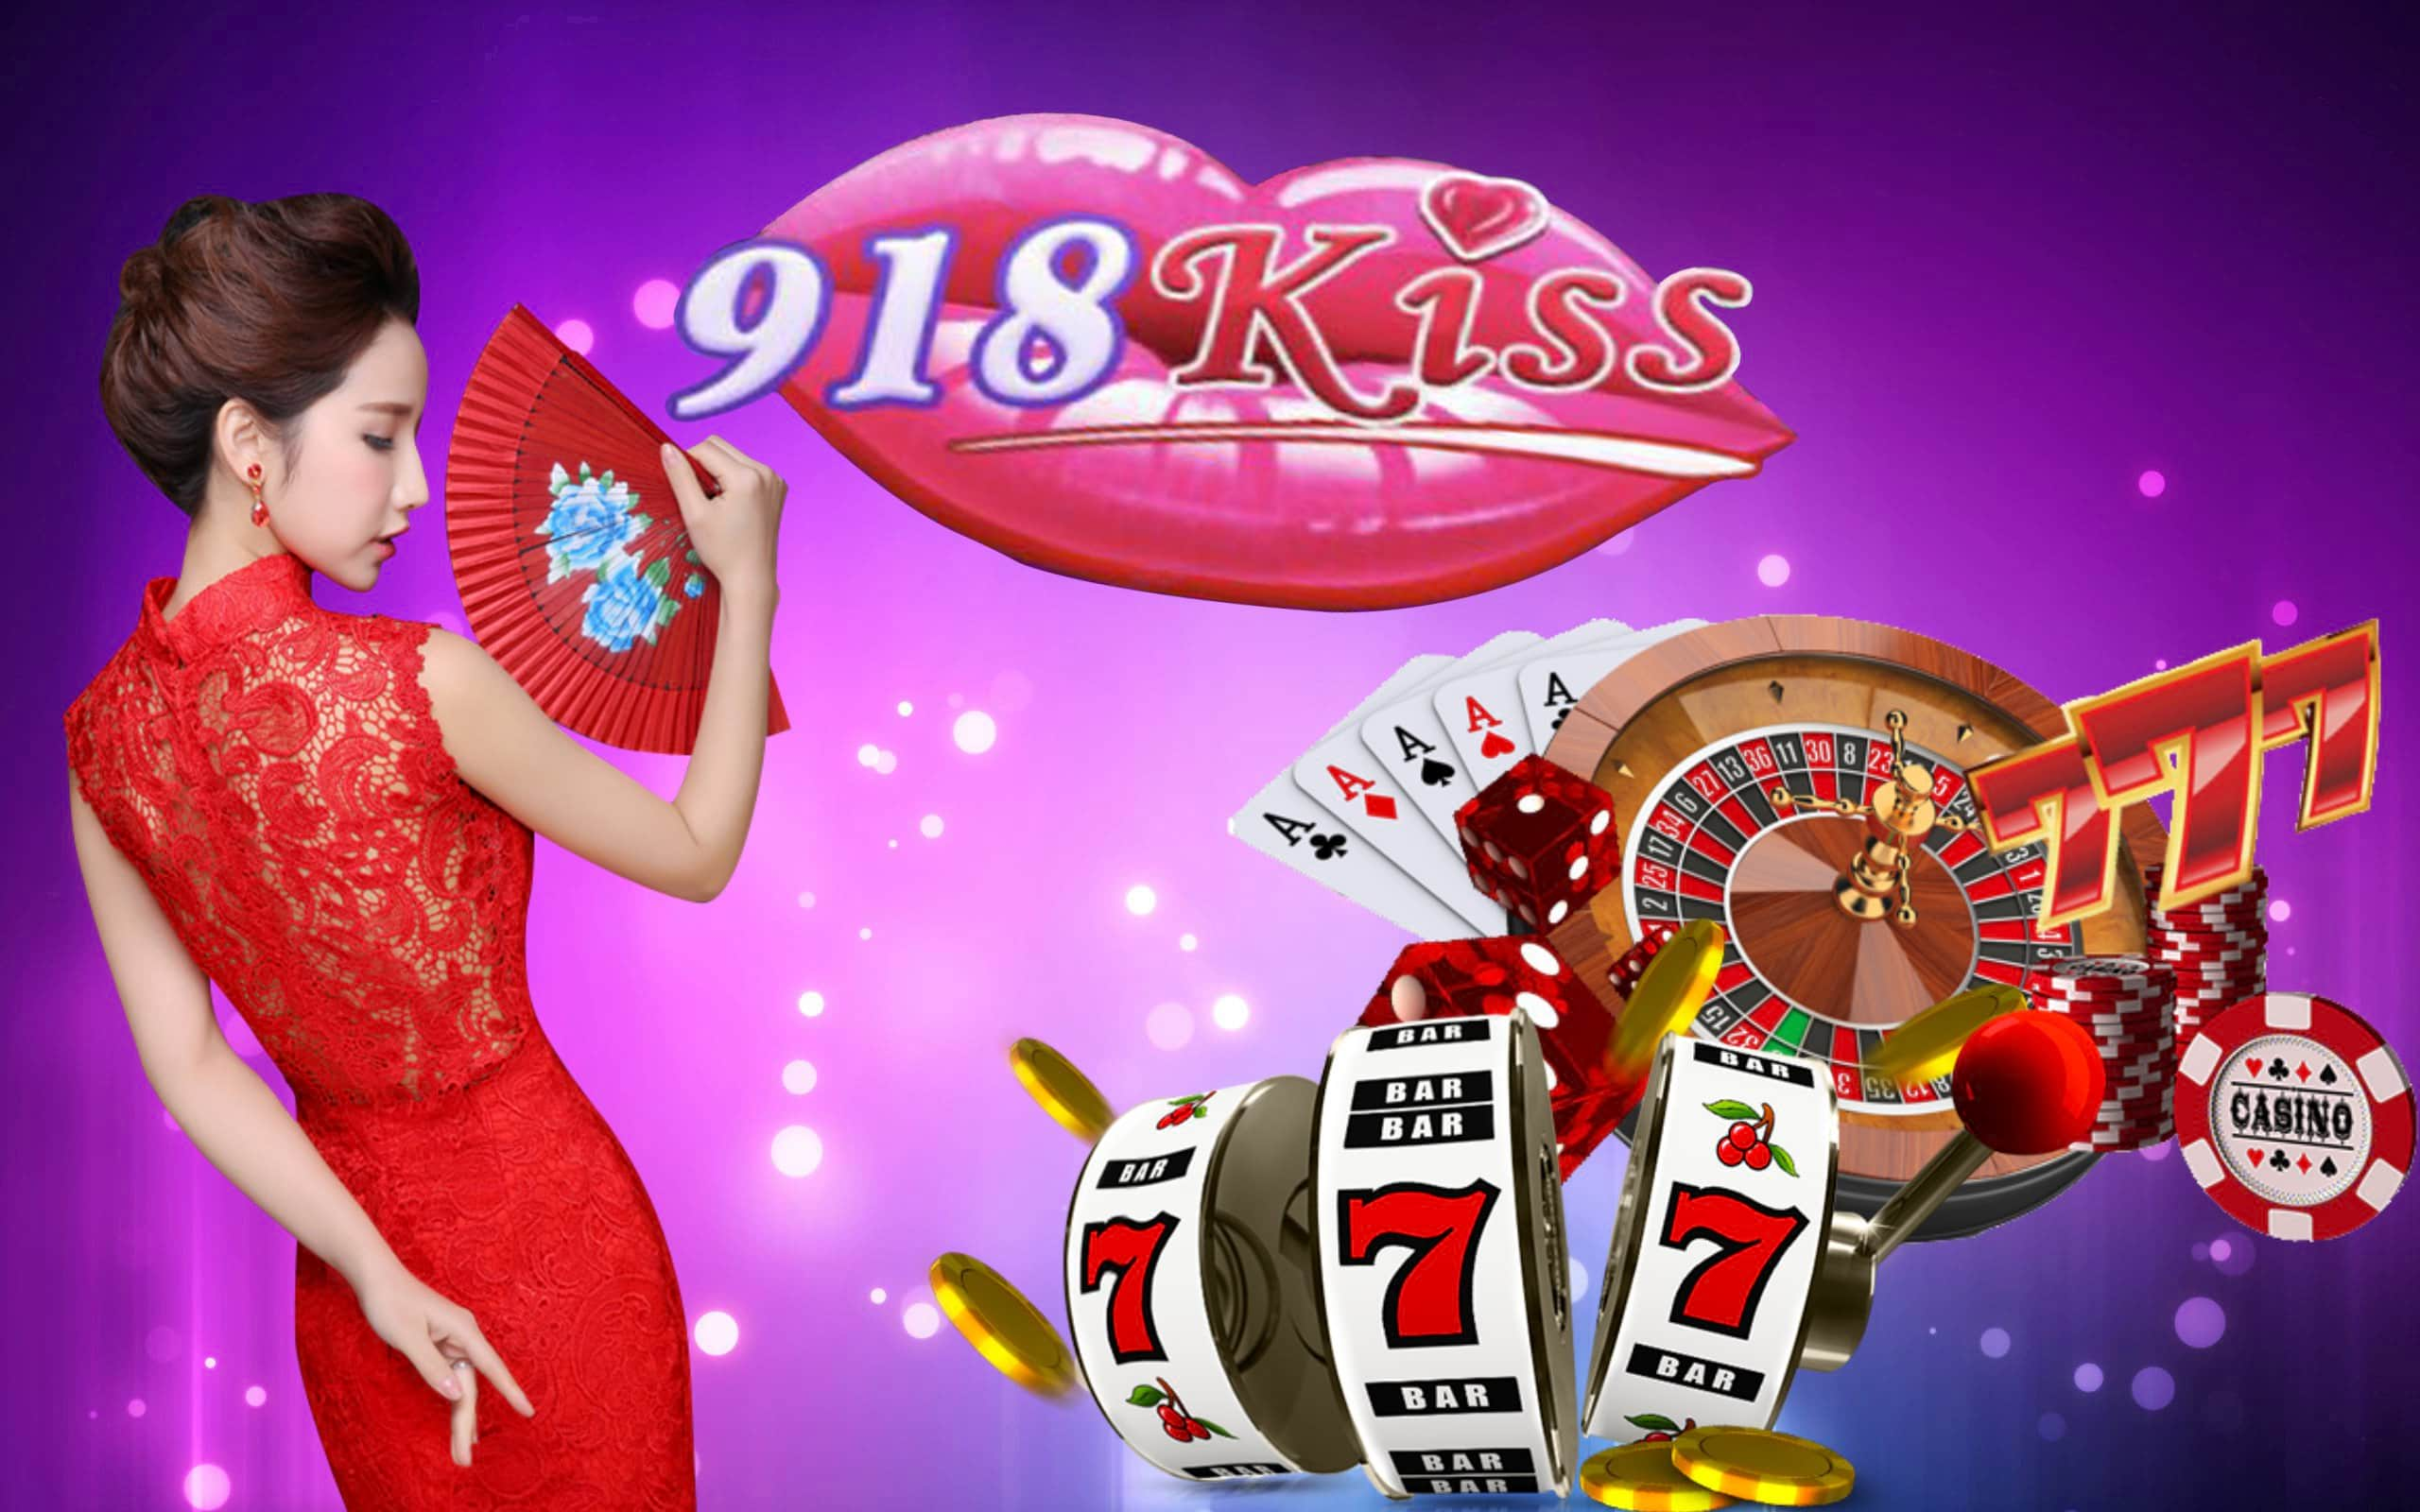 918kiss Easy Win APK Free Download 2021 New Version For Android & IOS